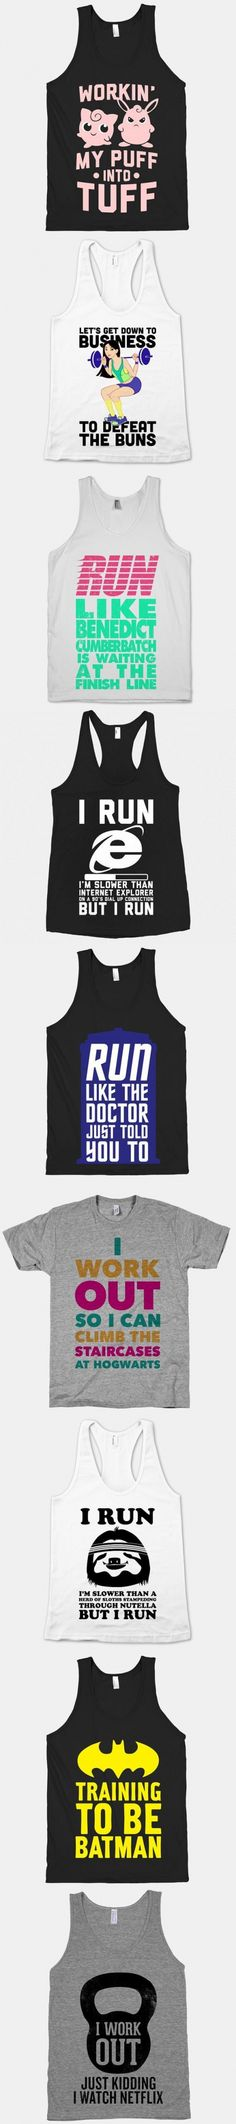 Workout Shirts You Didn't Know You Needed.  Run like Benedict Cumberbatch is at the finish line :D